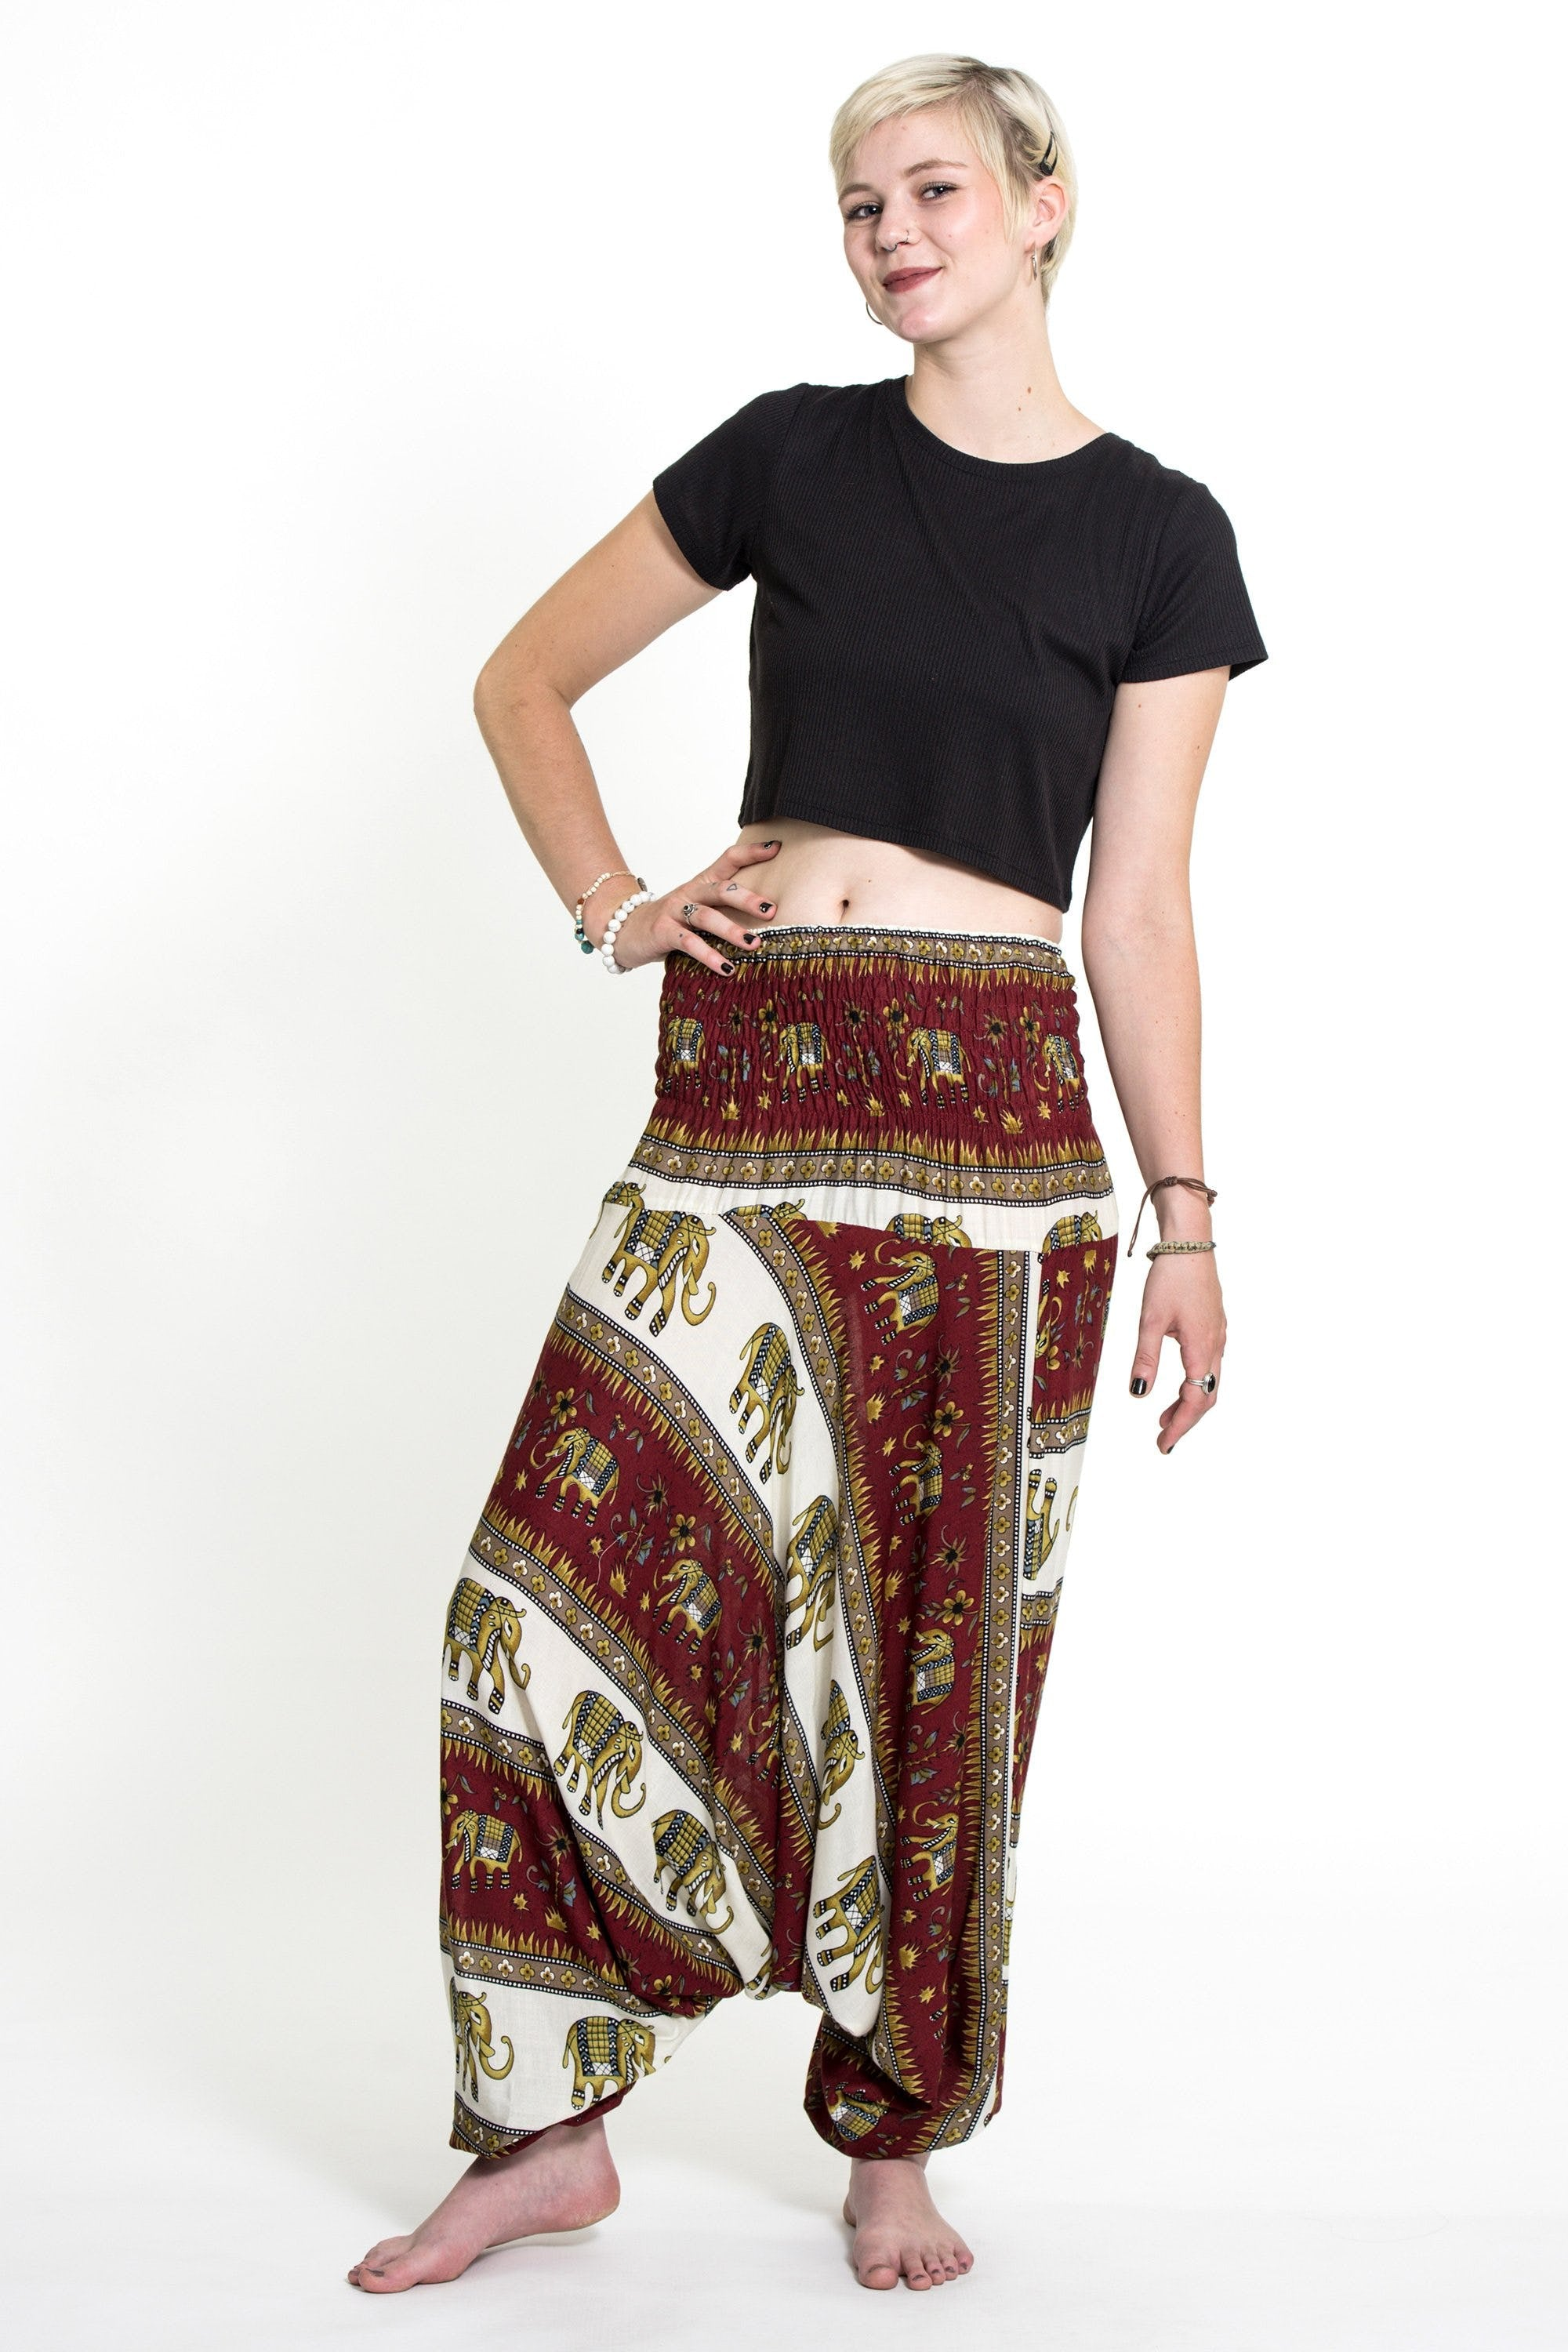 Thai Low Crotch Harem Pant / Jumpsuit / Jumper- Elephant Bliss